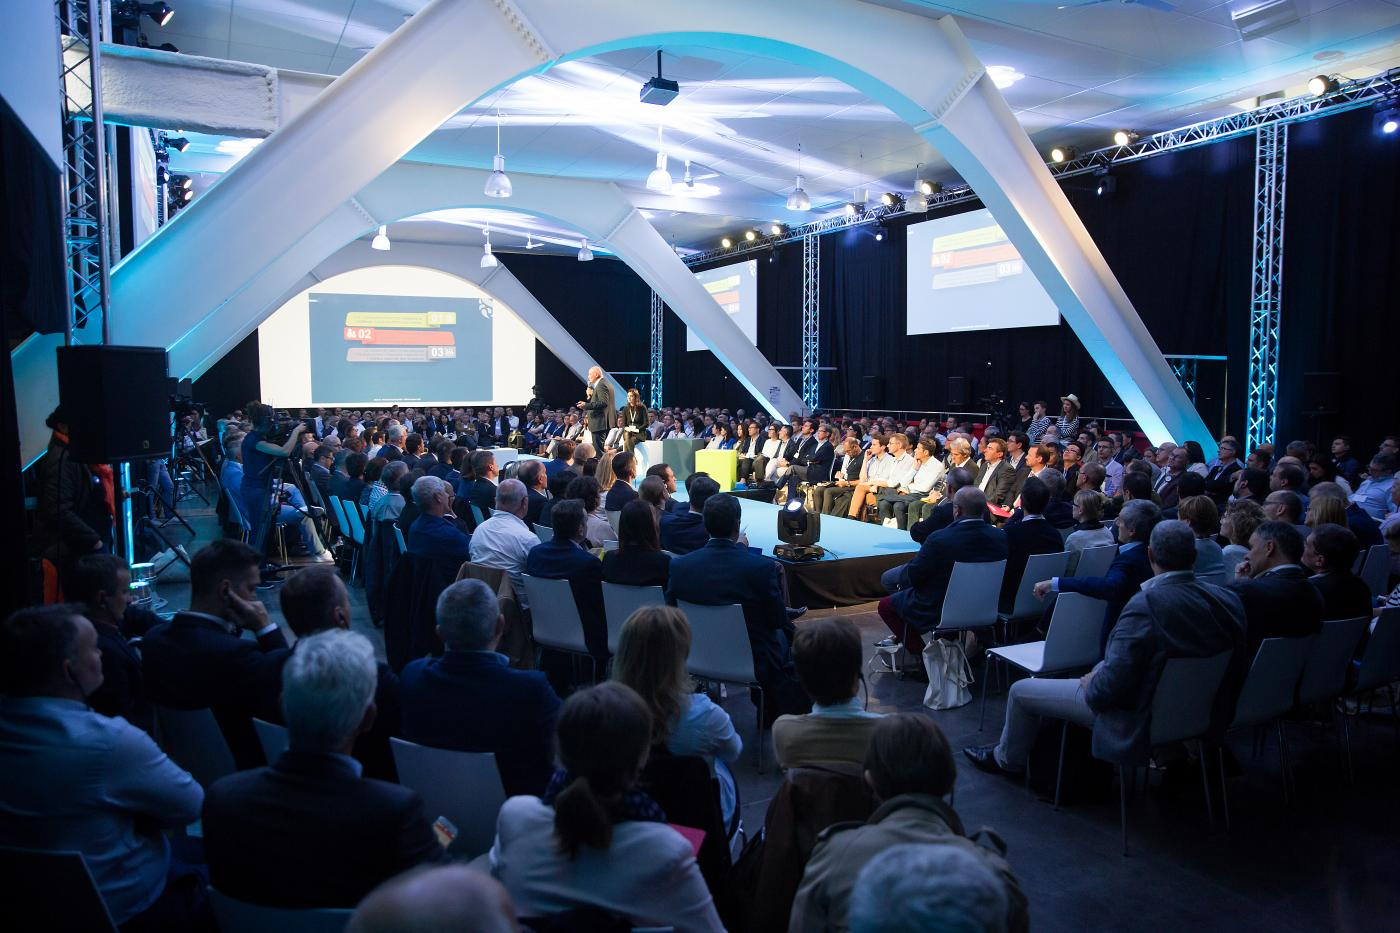 Centre_de_congres_pornichet_hall_des_paris